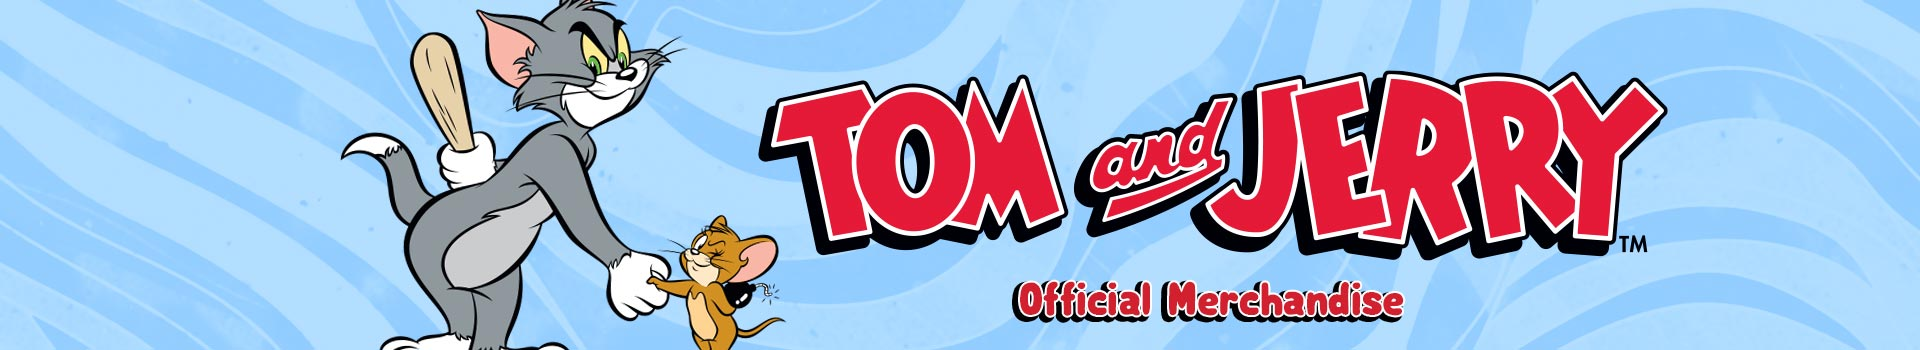 Tom & Jerry - Official Merchandise